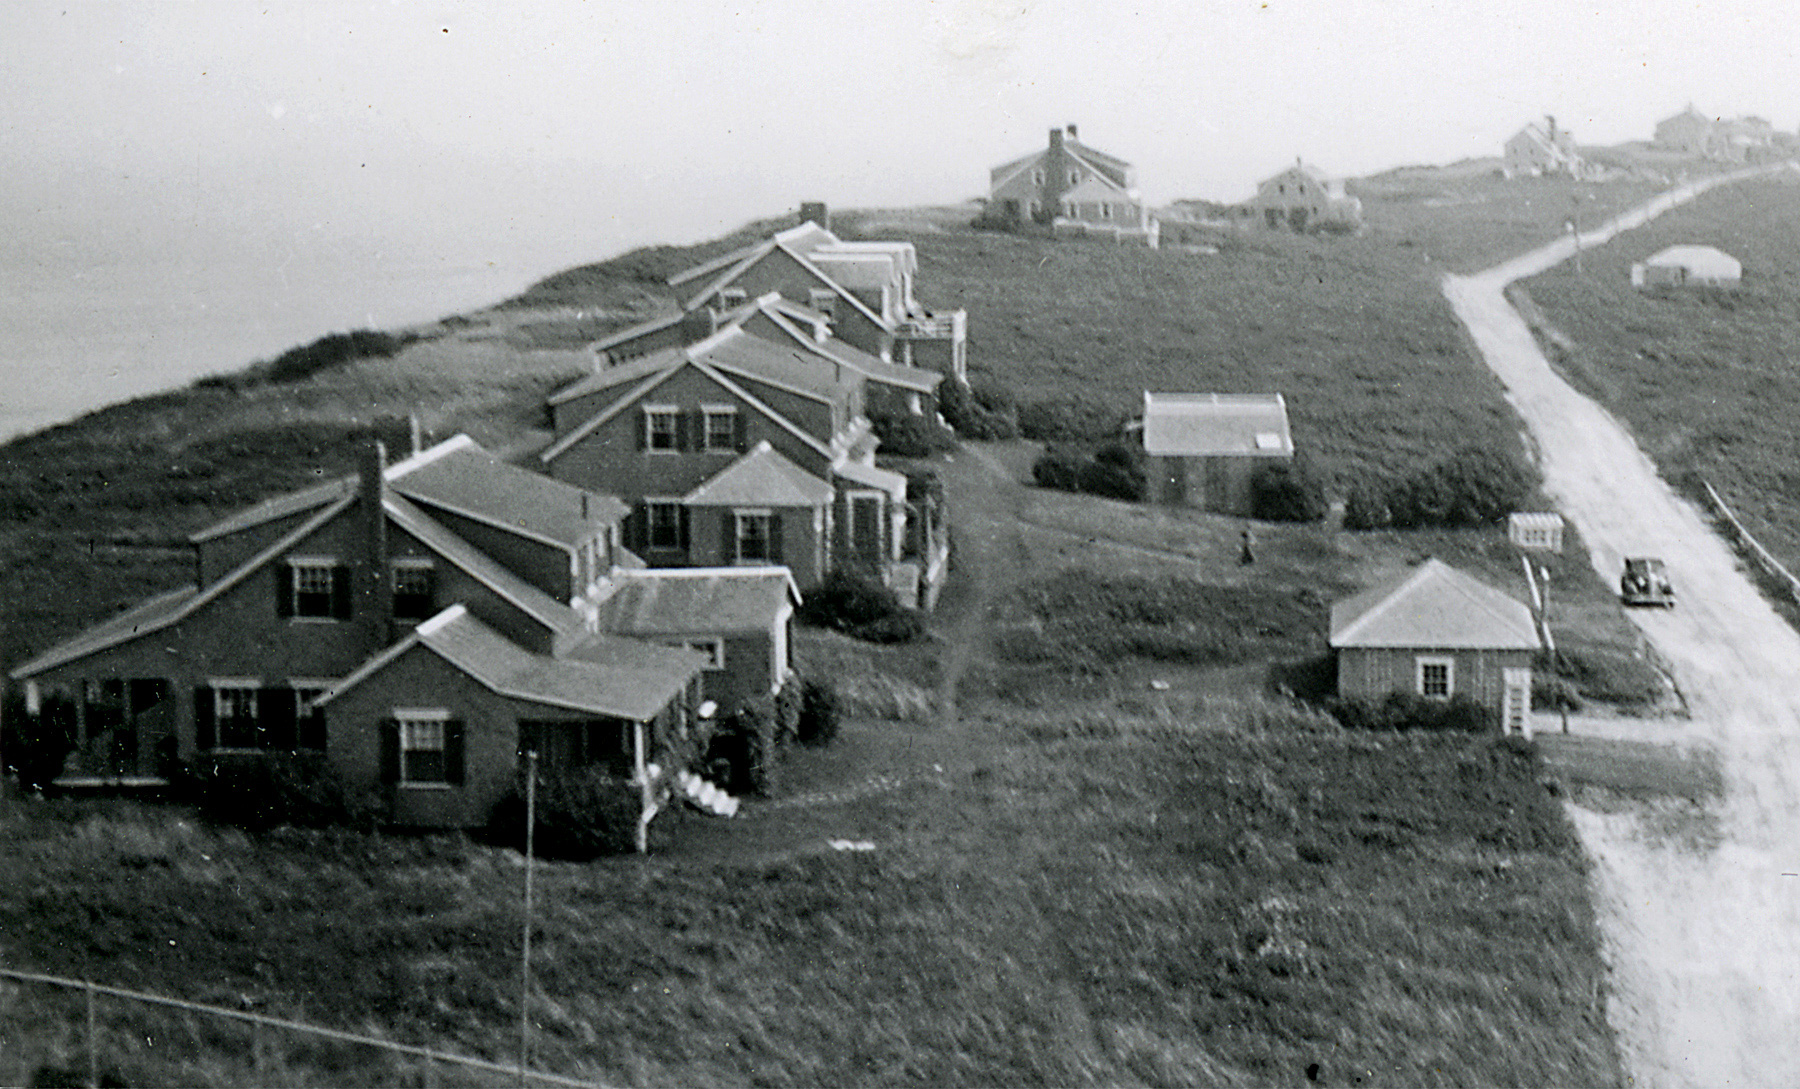 Siasconset Bluff in 1937